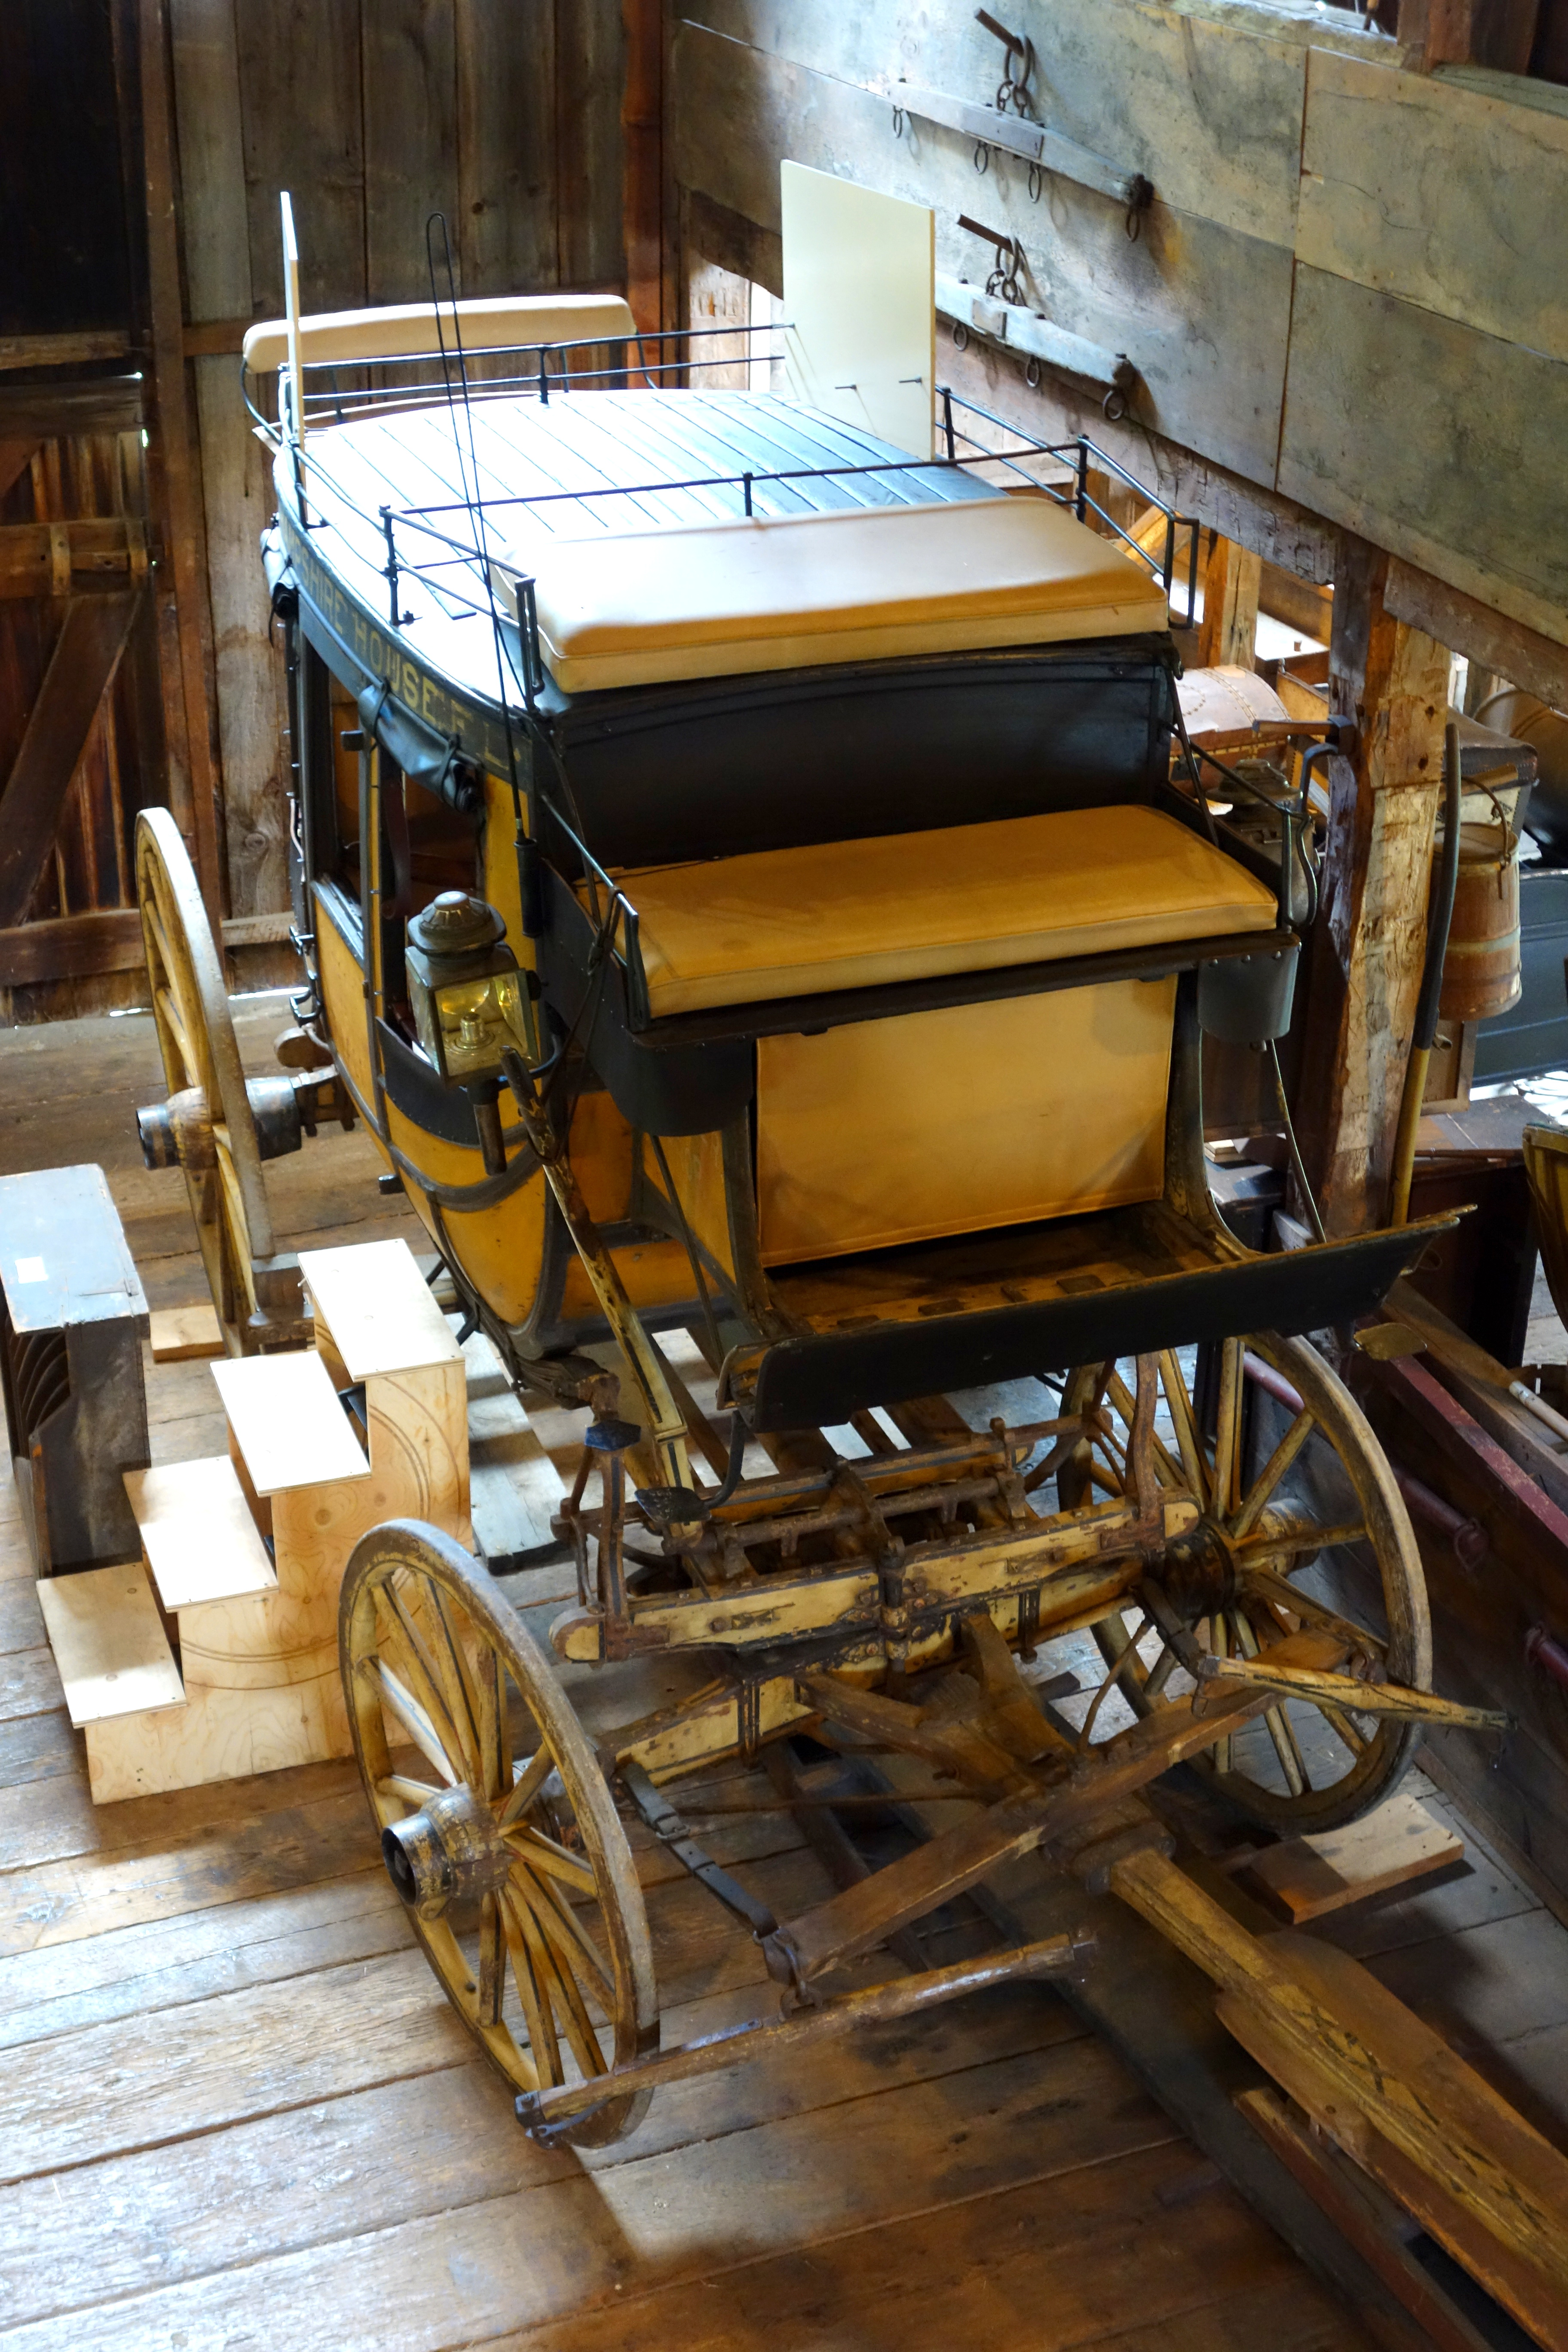 file:abbott & downing concord coach, view 4 - hadley farm museum